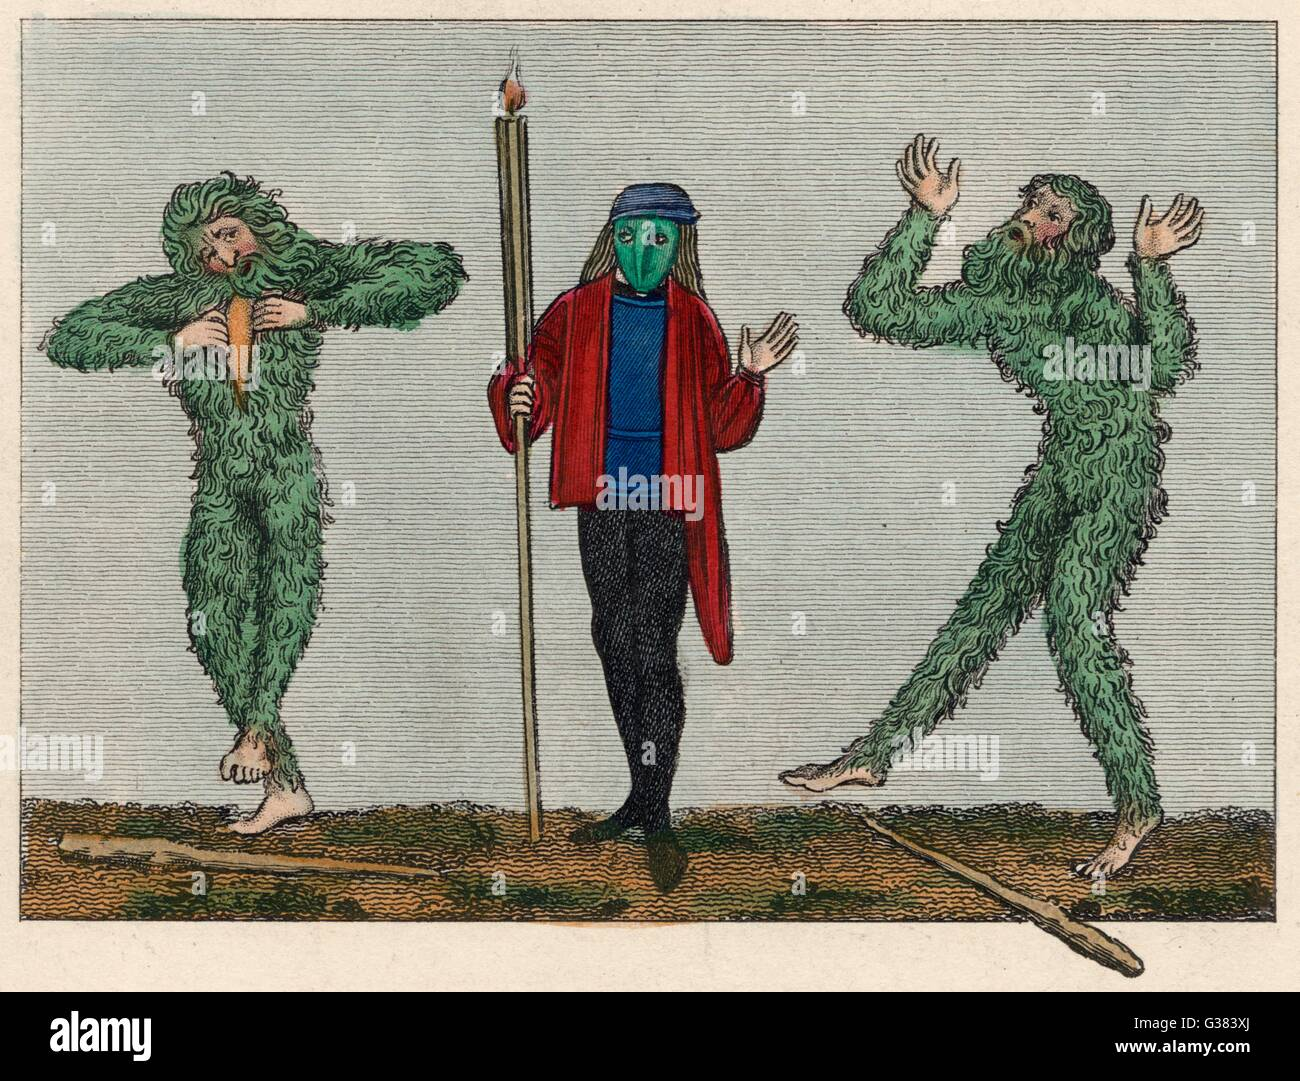 Green men of English  traditional folk customs,  dressed for a masquerade        Date: 15th century - Stock Image